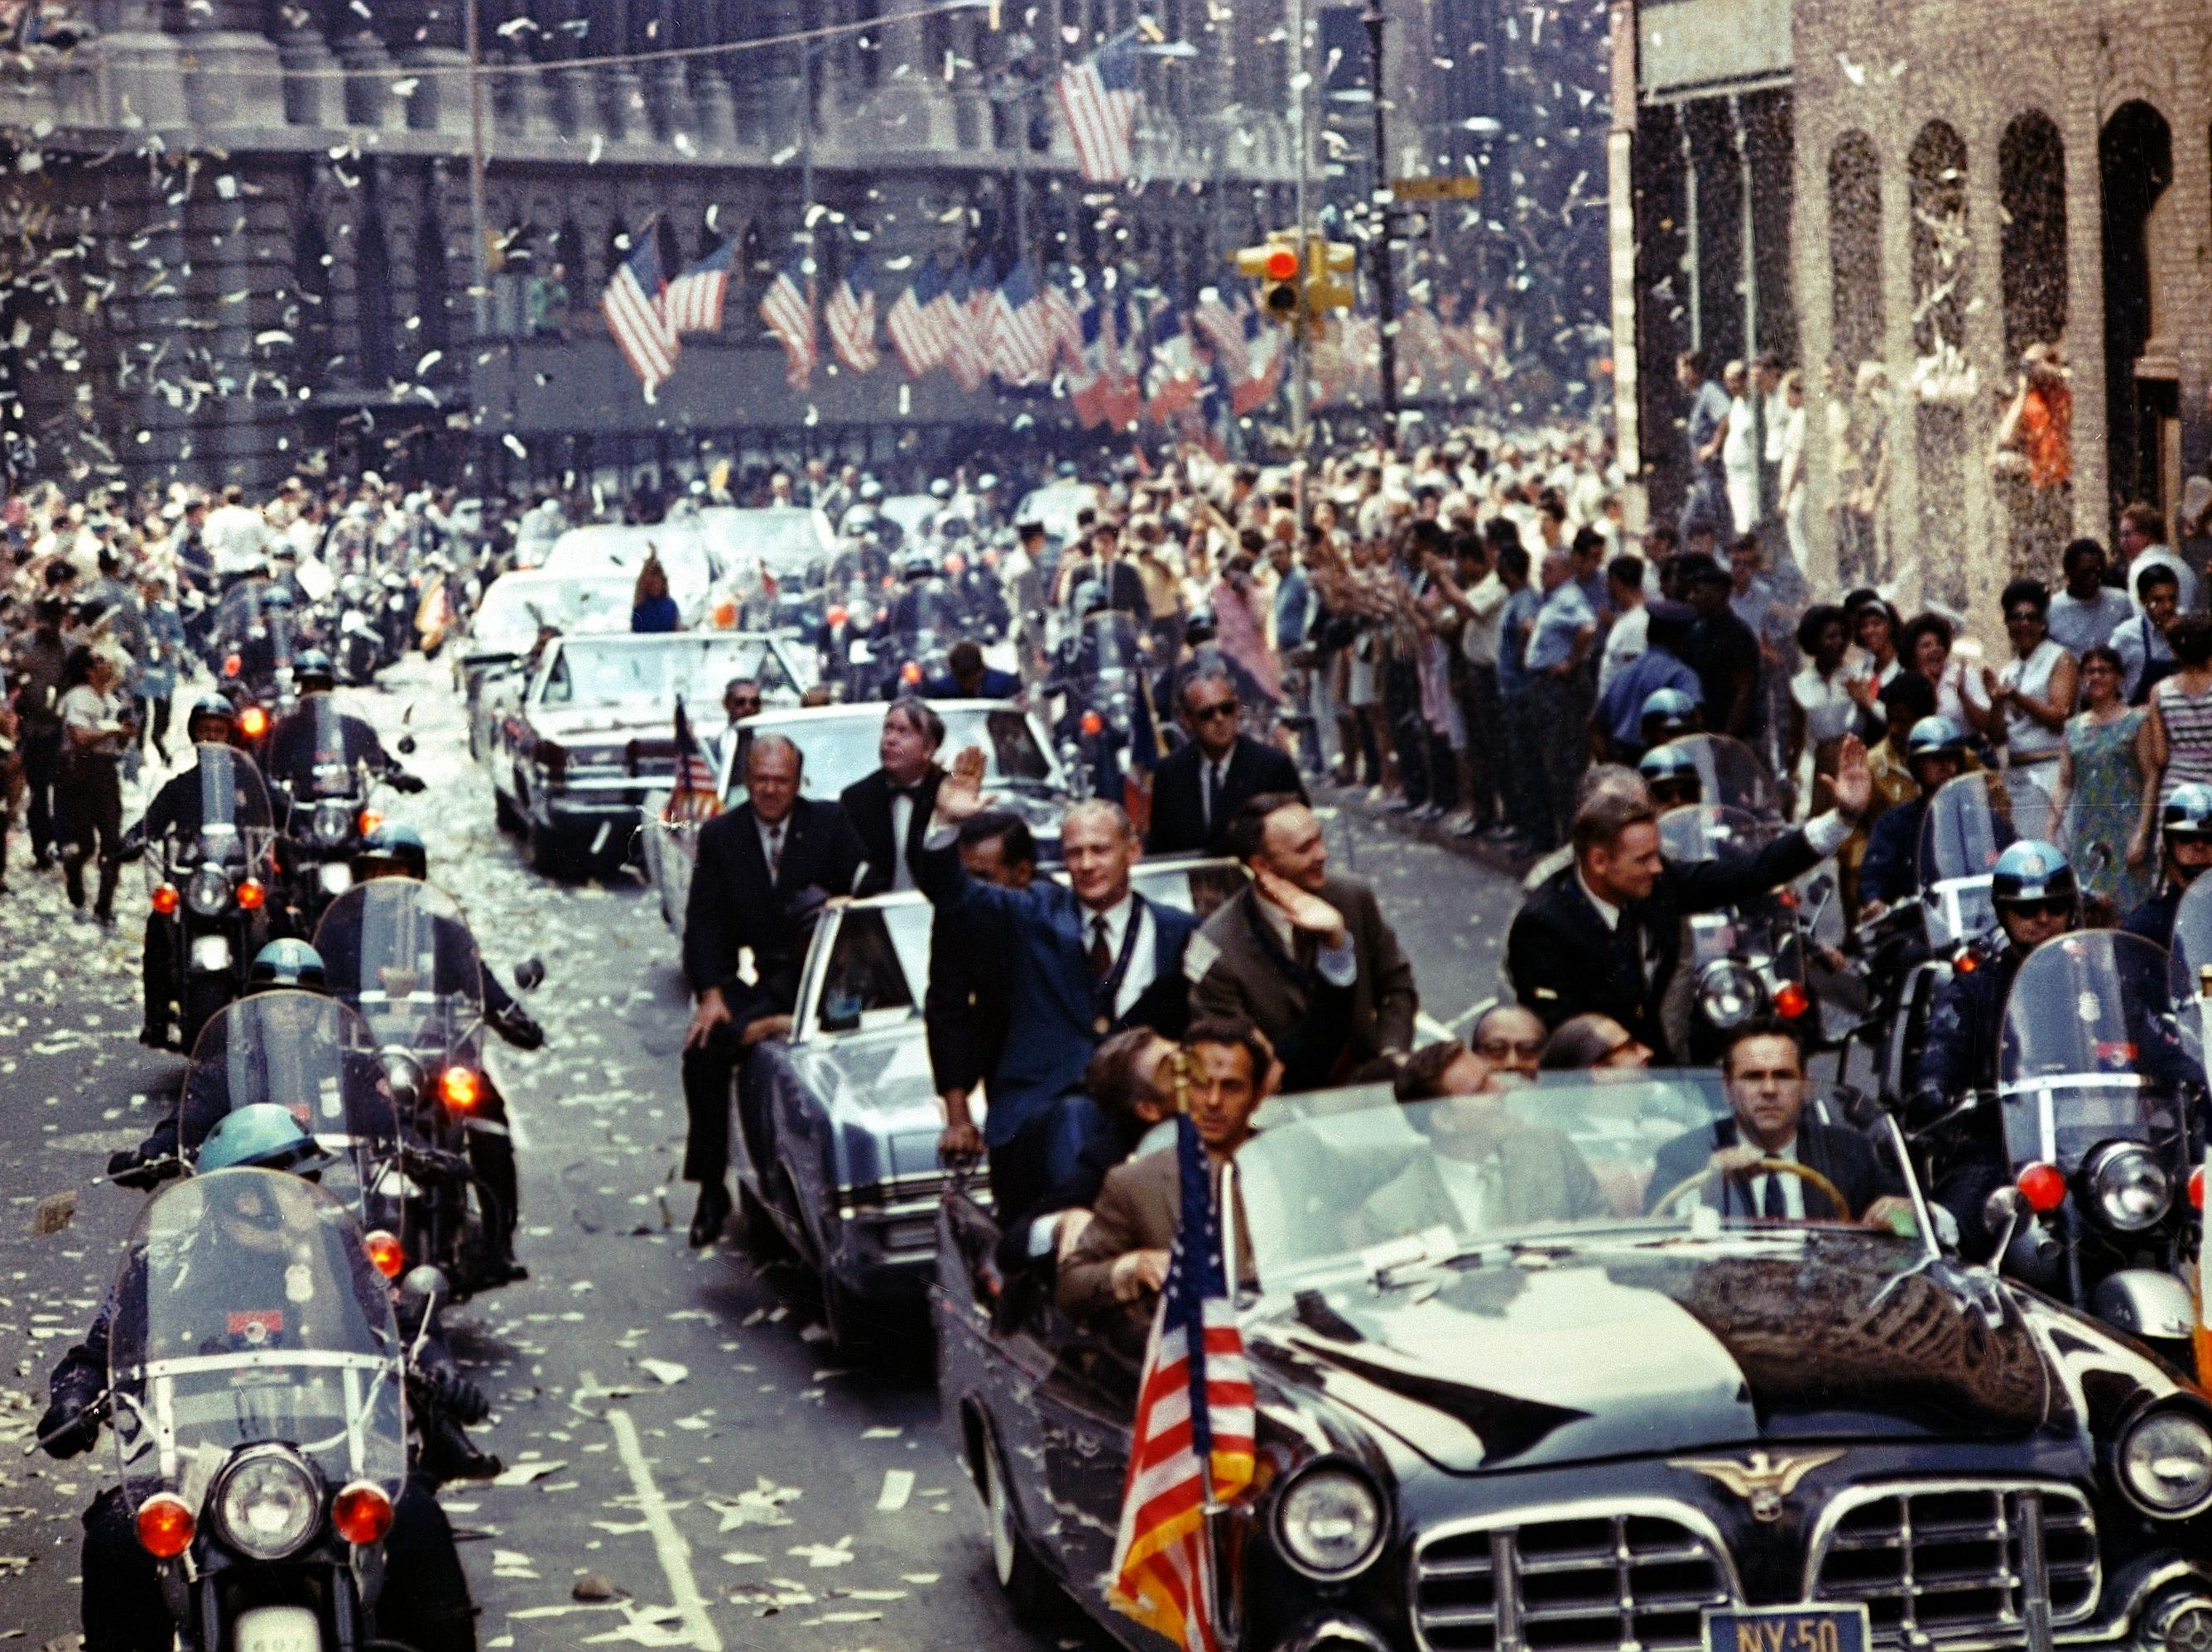 New York City welcomes Apollo 11 crewmen in a showering of ticker tape down Broadway and Park Avenue in a parade termed as the largest in the city's history. Pictured in the lead car, from the right, are astronauts Neil A. Armstrong, commander; Michael Collins, command module pilot; and Edwin E. Aldrin Jr., lunar module pilot.